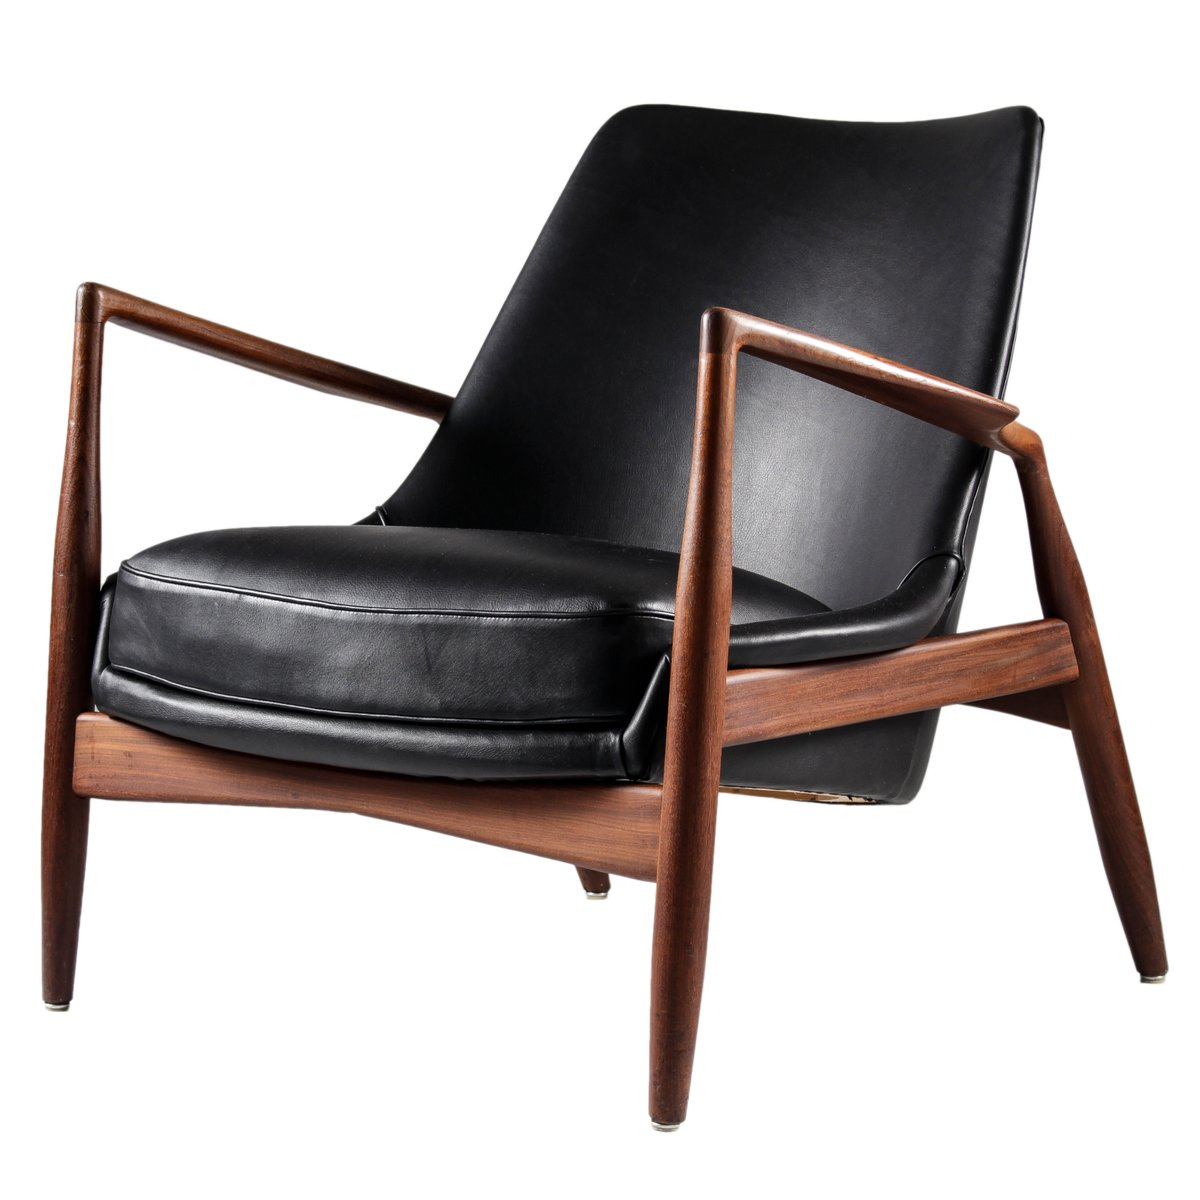 This sculptural pair of lounge chairs by ib kofod larsen is no longer - Black Leather Seal Chair By Ib Kofod Larsen For Ope M Bler